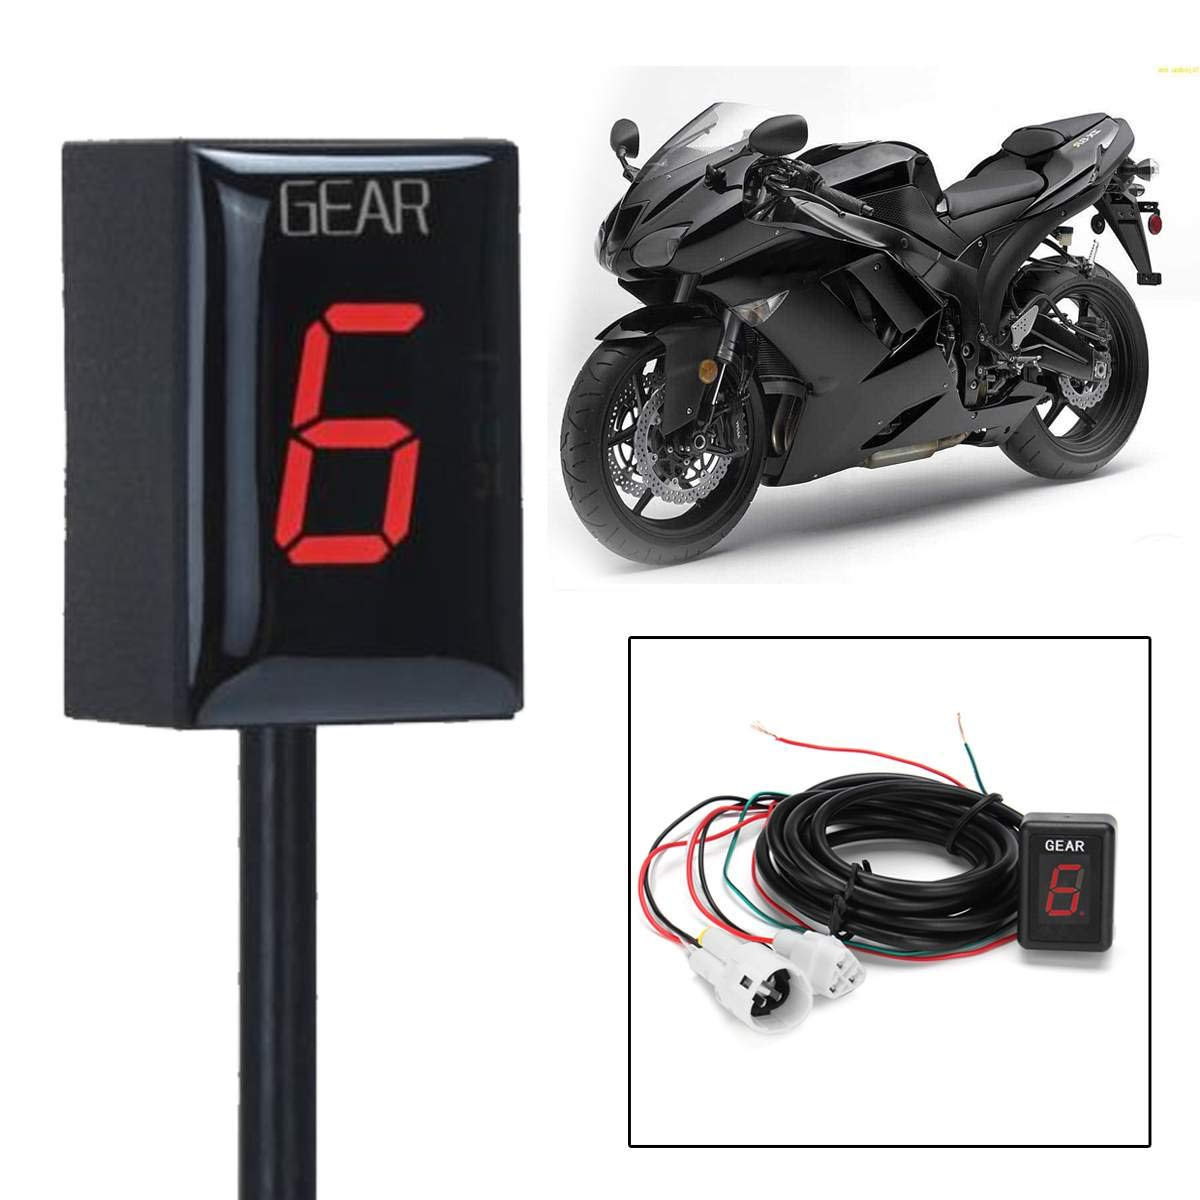 Amazon.com: Motorcycle LCD 1-6 Level Gear Indicator Digital ...